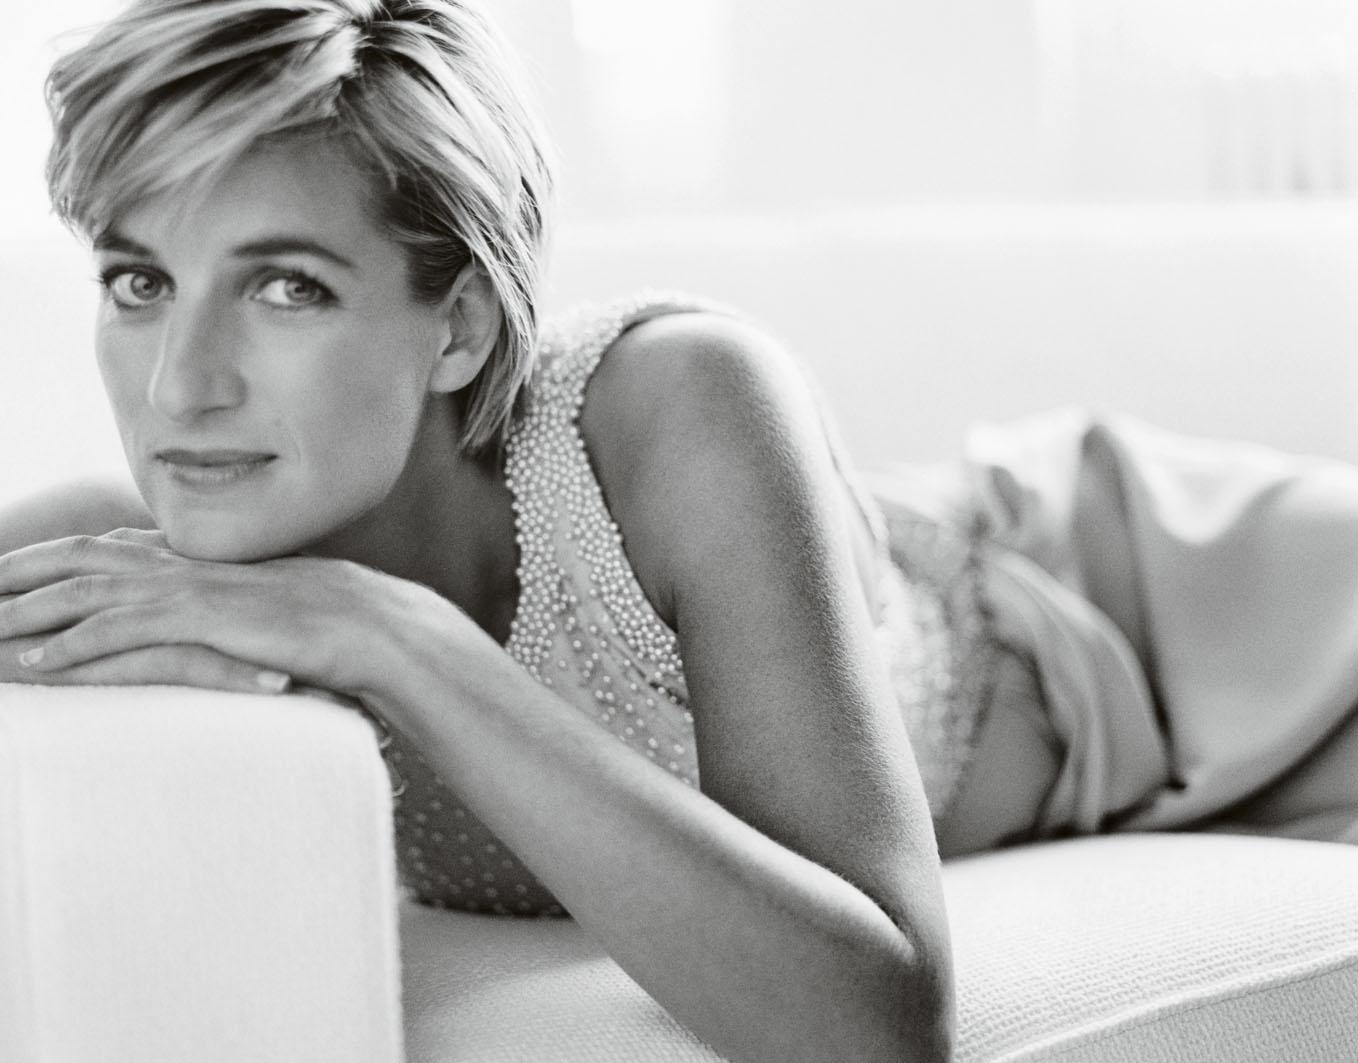 http://4.bp.blogspot.com/-MmOi8_JDcx8/UJTwnR9DcPI/AAAAAAAADJ4/vpR5KC5XxR0/s1600/mario-testino-royal-photographer-princess-diana-black-and-white-1997.jpg